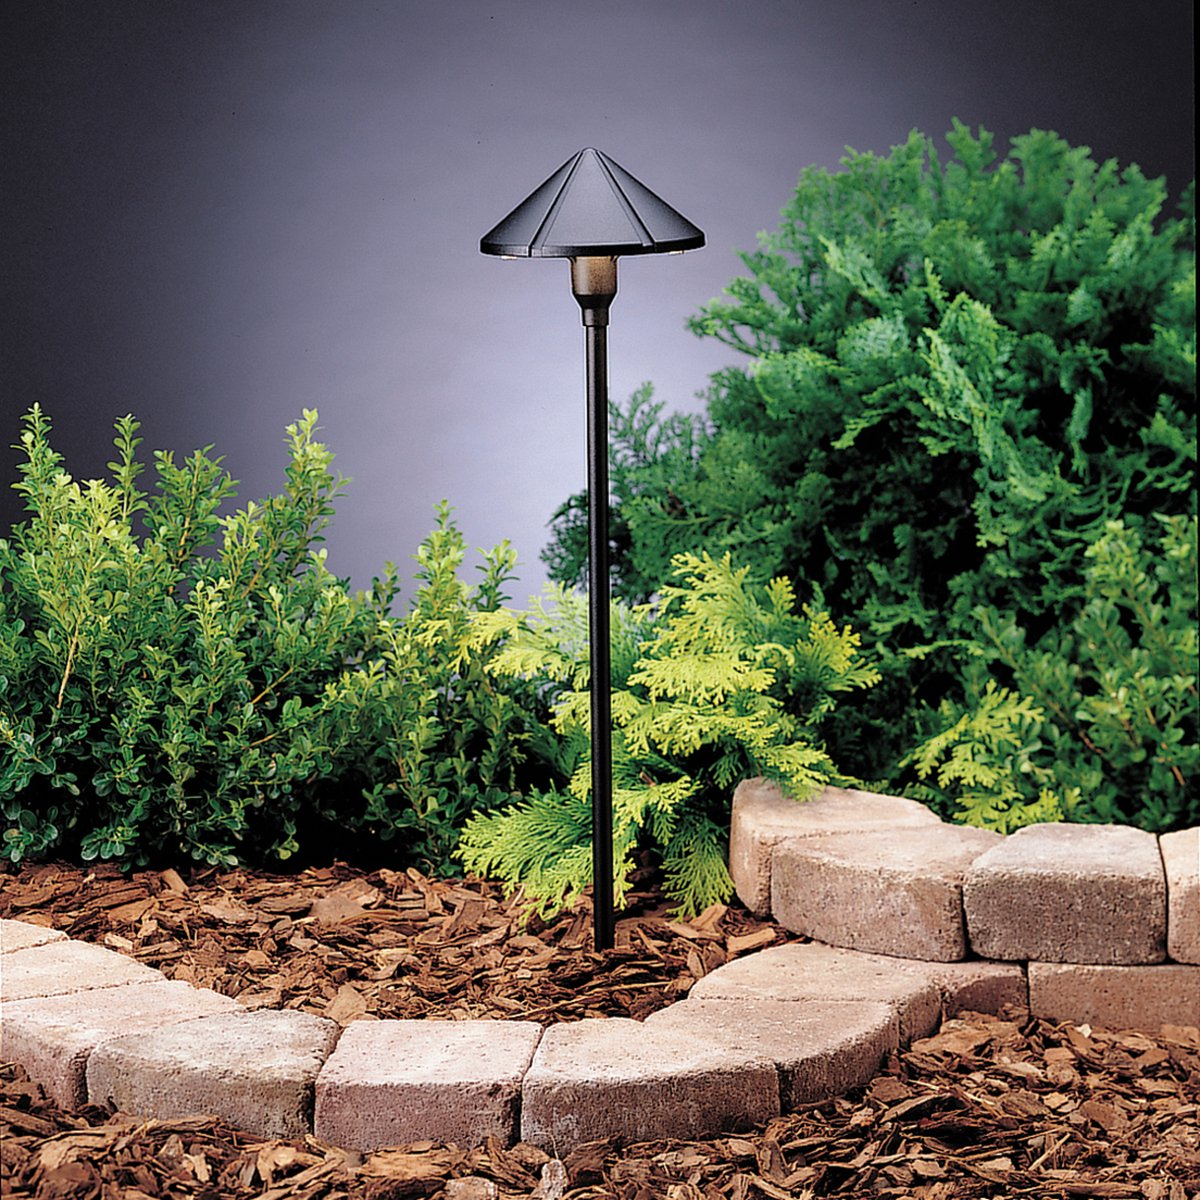 Kichler 15326azt one light path spread landscape path lights kichler 15326azt one light path spread landscape path lights amazon workwithnaturefo